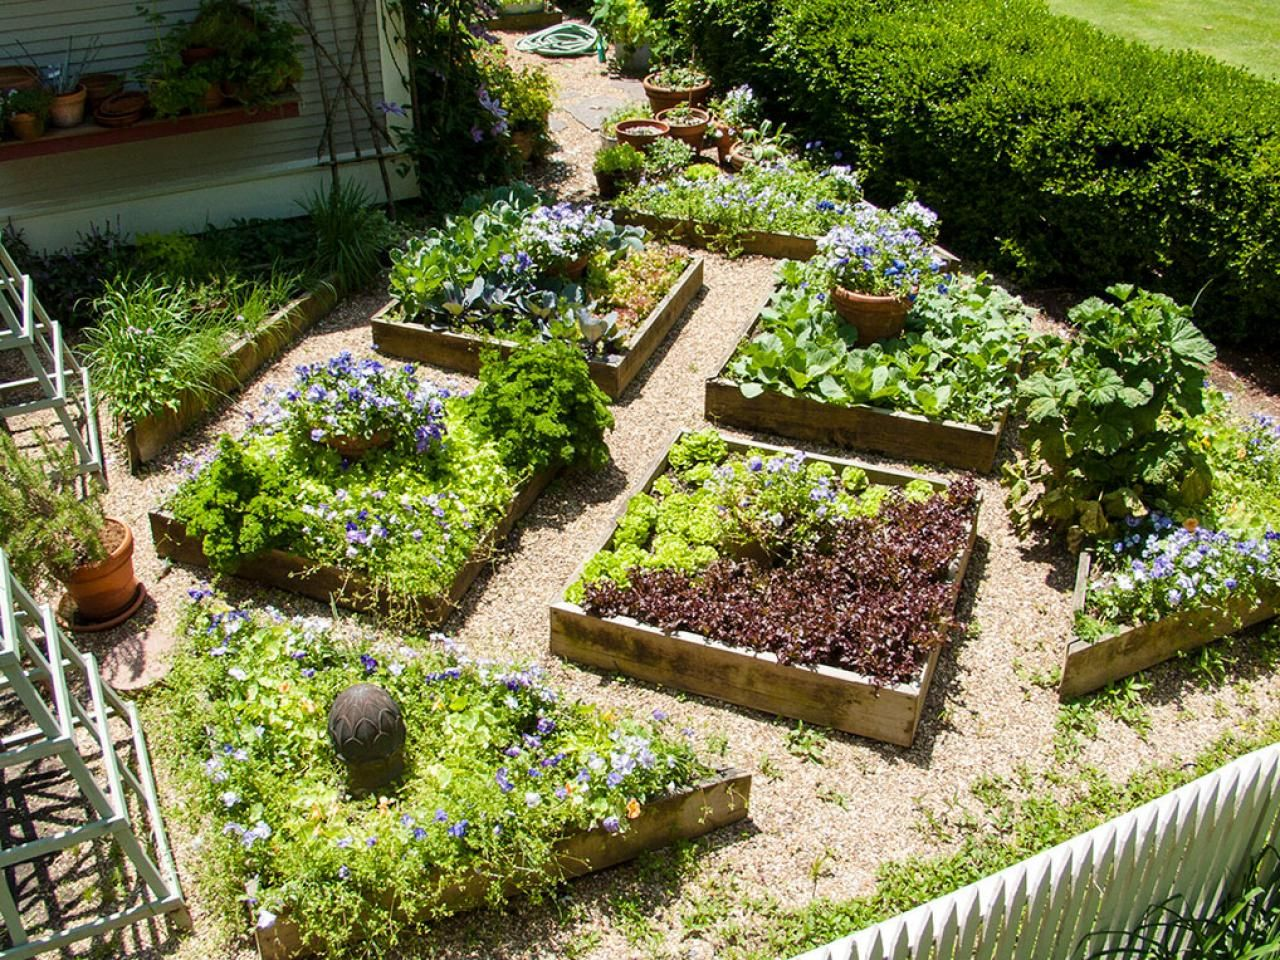 Vegetable garden ideas for small spaces - Small Space Edible Landscape Design Raised Bed Garden Designvegetable